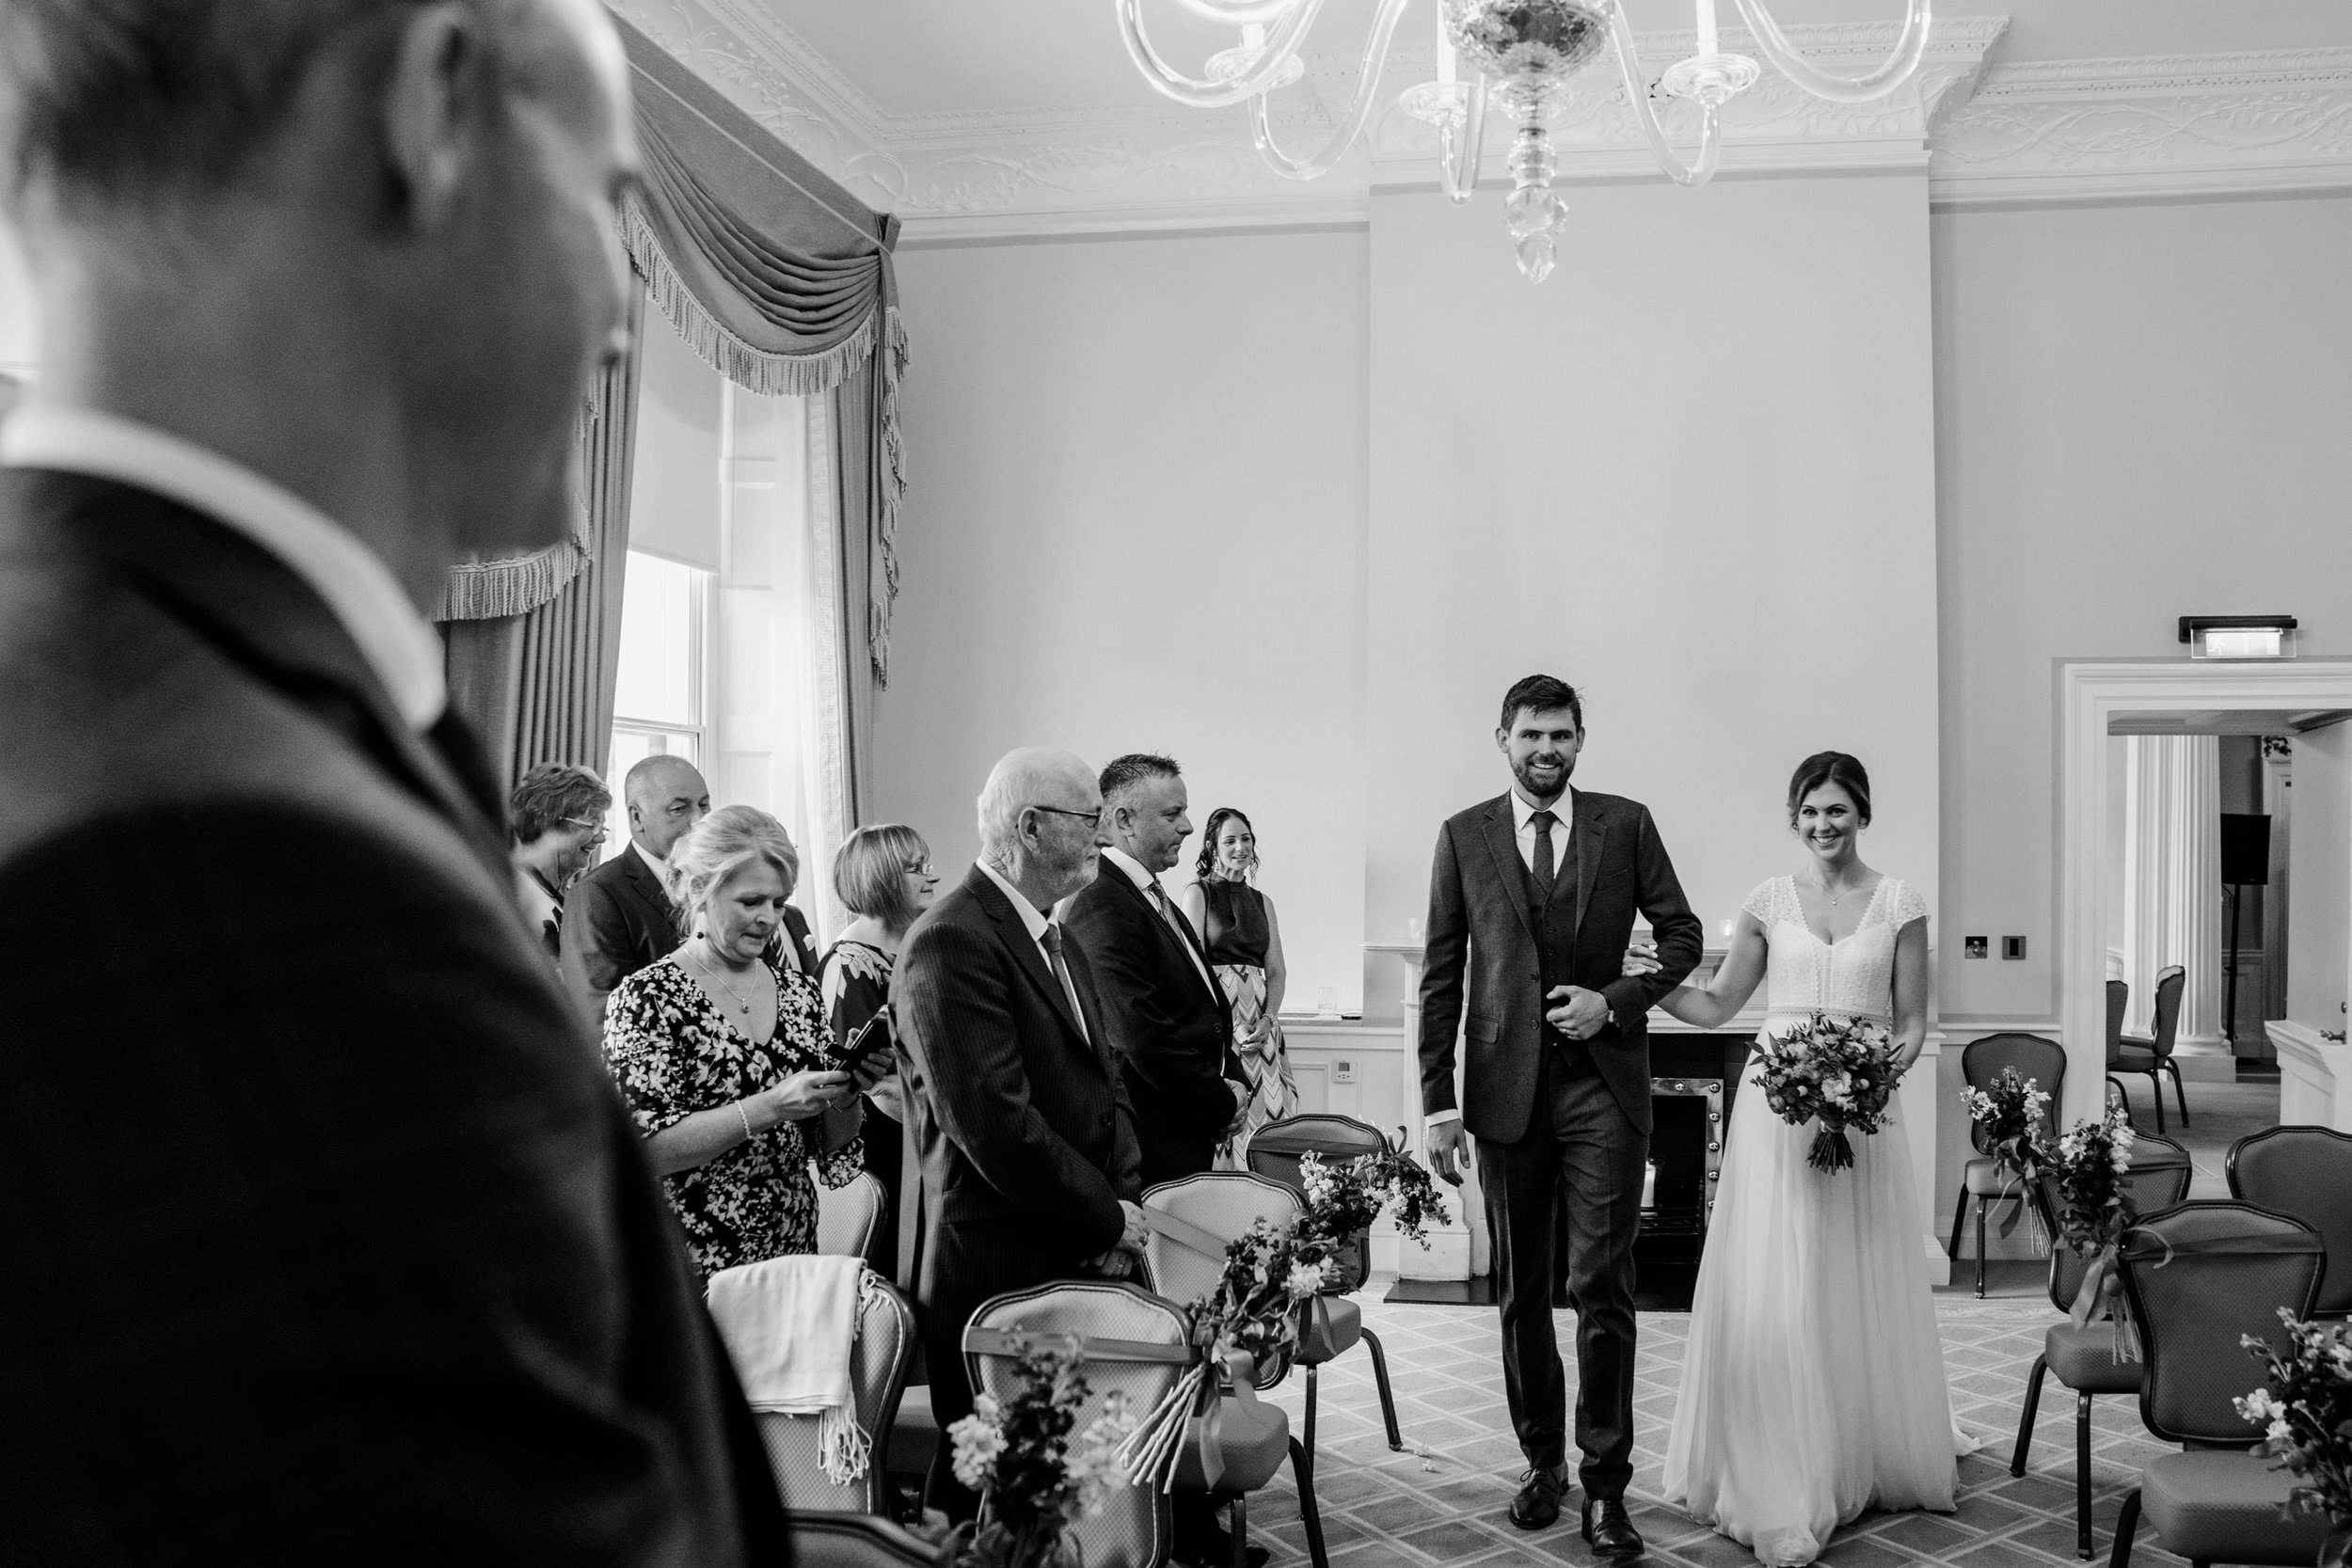 s&r_the_shelbourne_hotel_wedding_photographer_livia_figueiredo_6.jpg